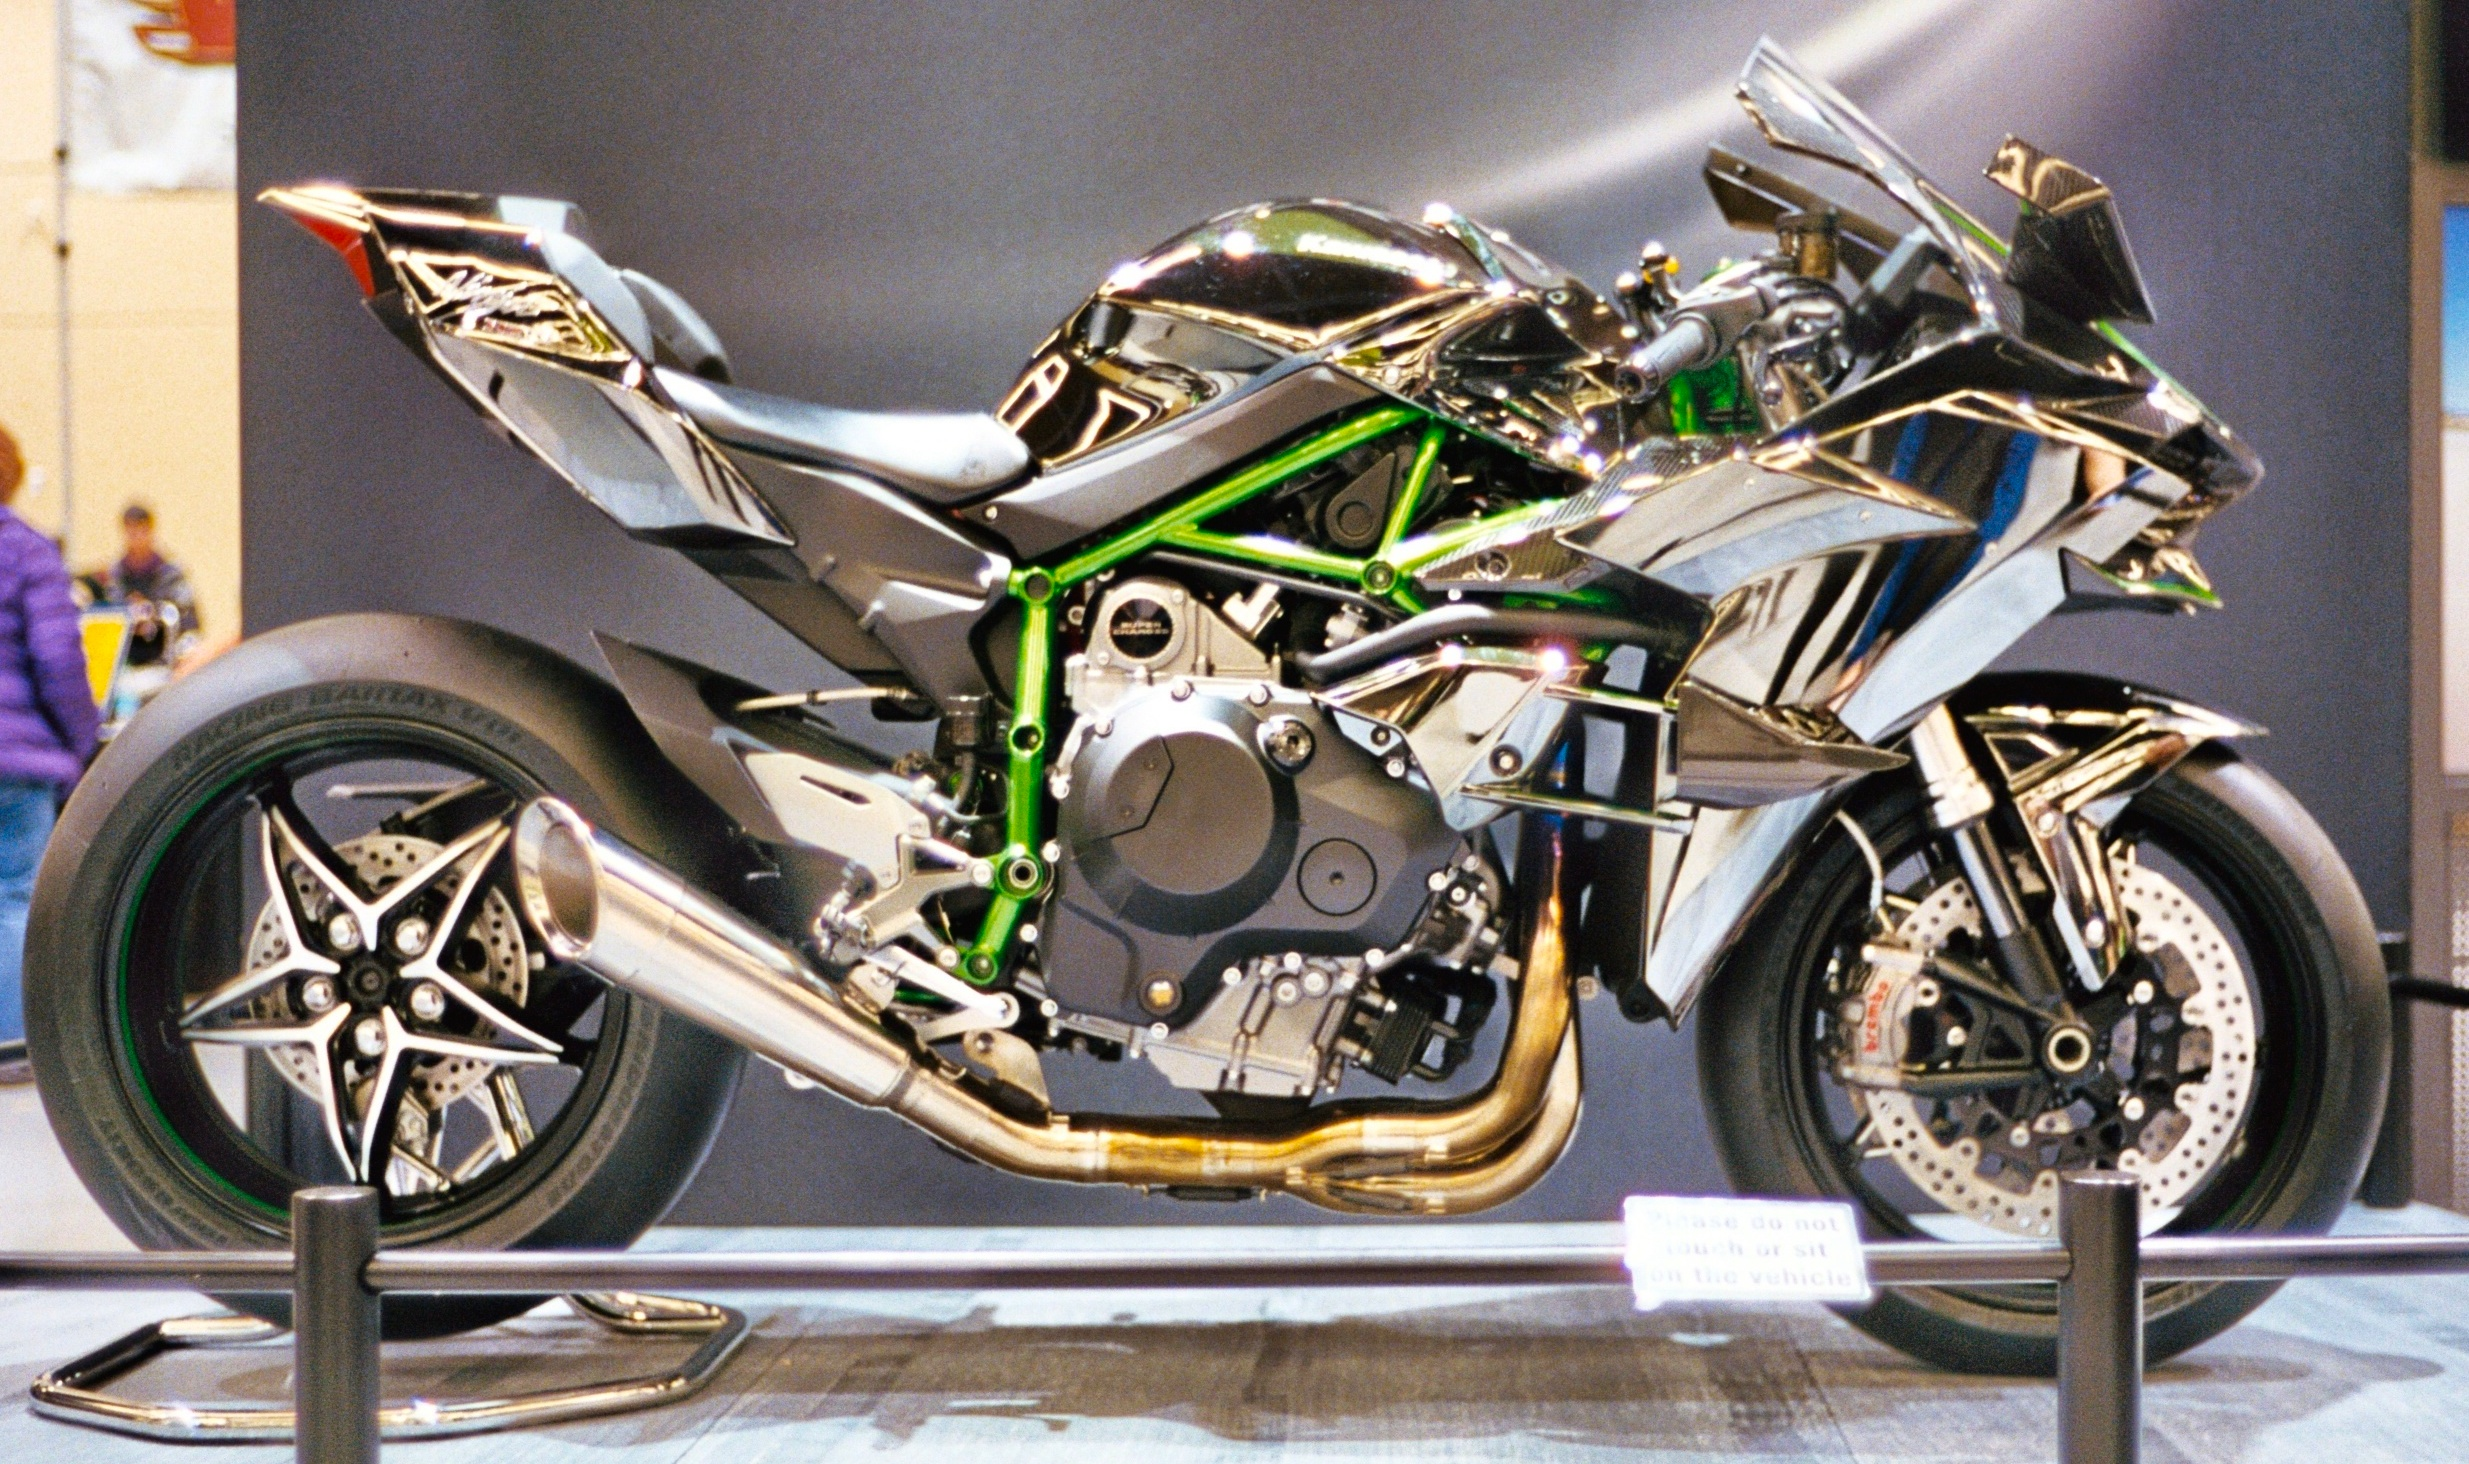 FileKawasaki Ninja H2R RightJPG